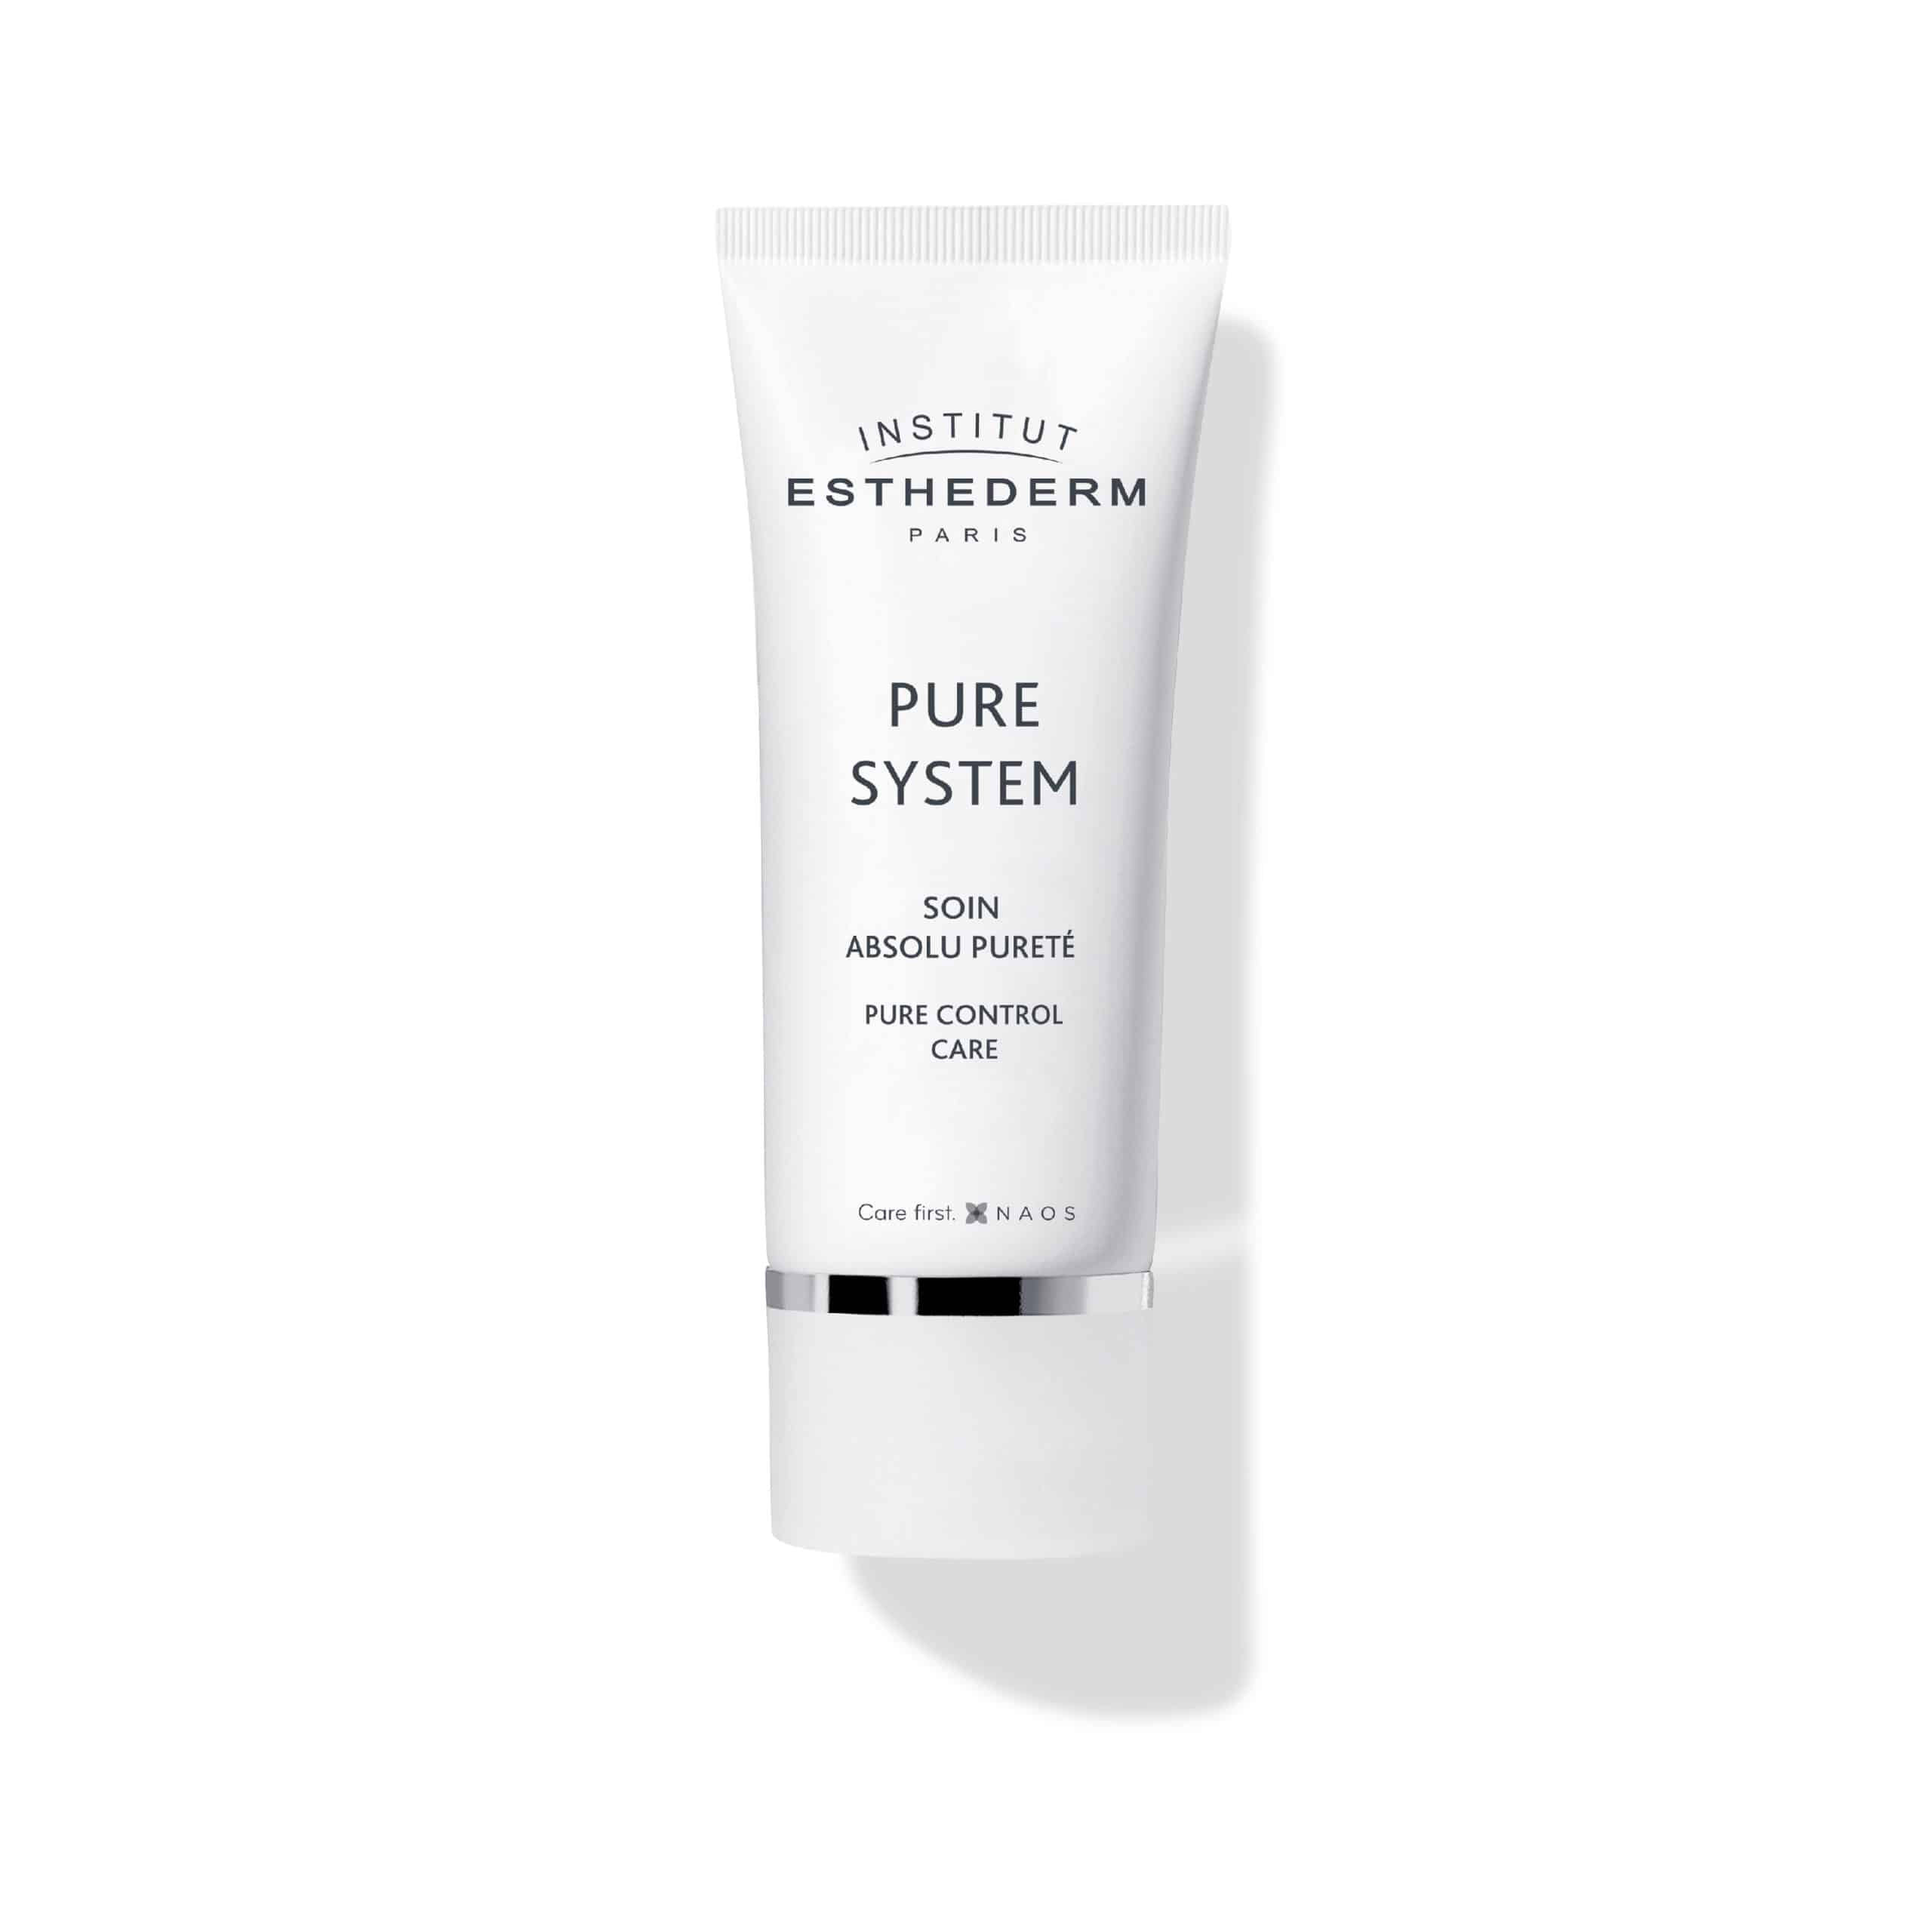 ESTHEDERM product photo, Pure System Pure Control Care Cream 50ml, hydrating, mattifying skincare, less shine, oily skin